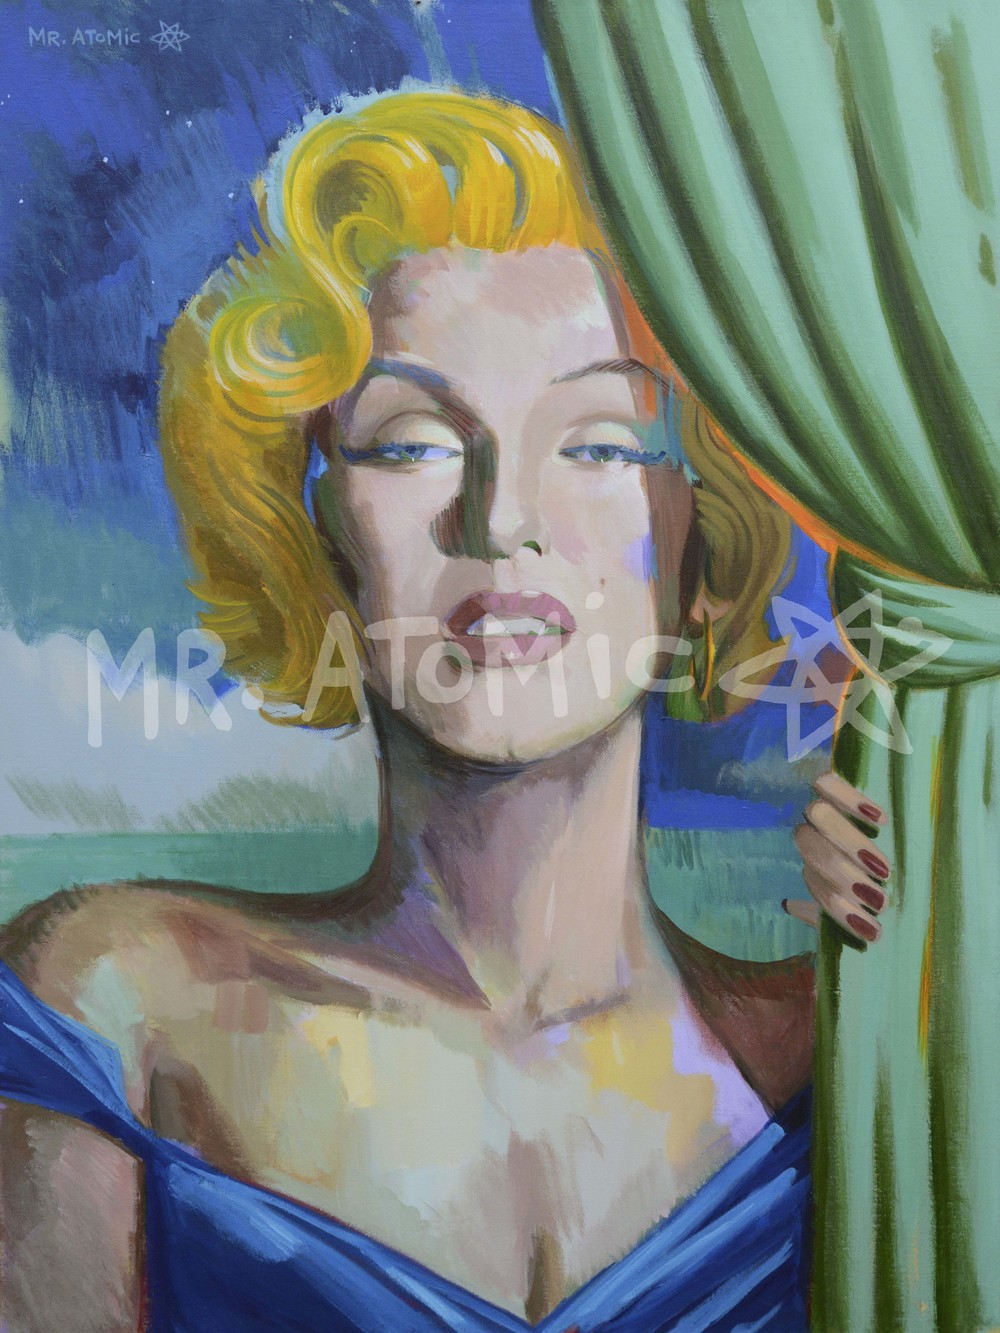 Pillow Case Blonde (Marilyn Monroe) - 3'x4'